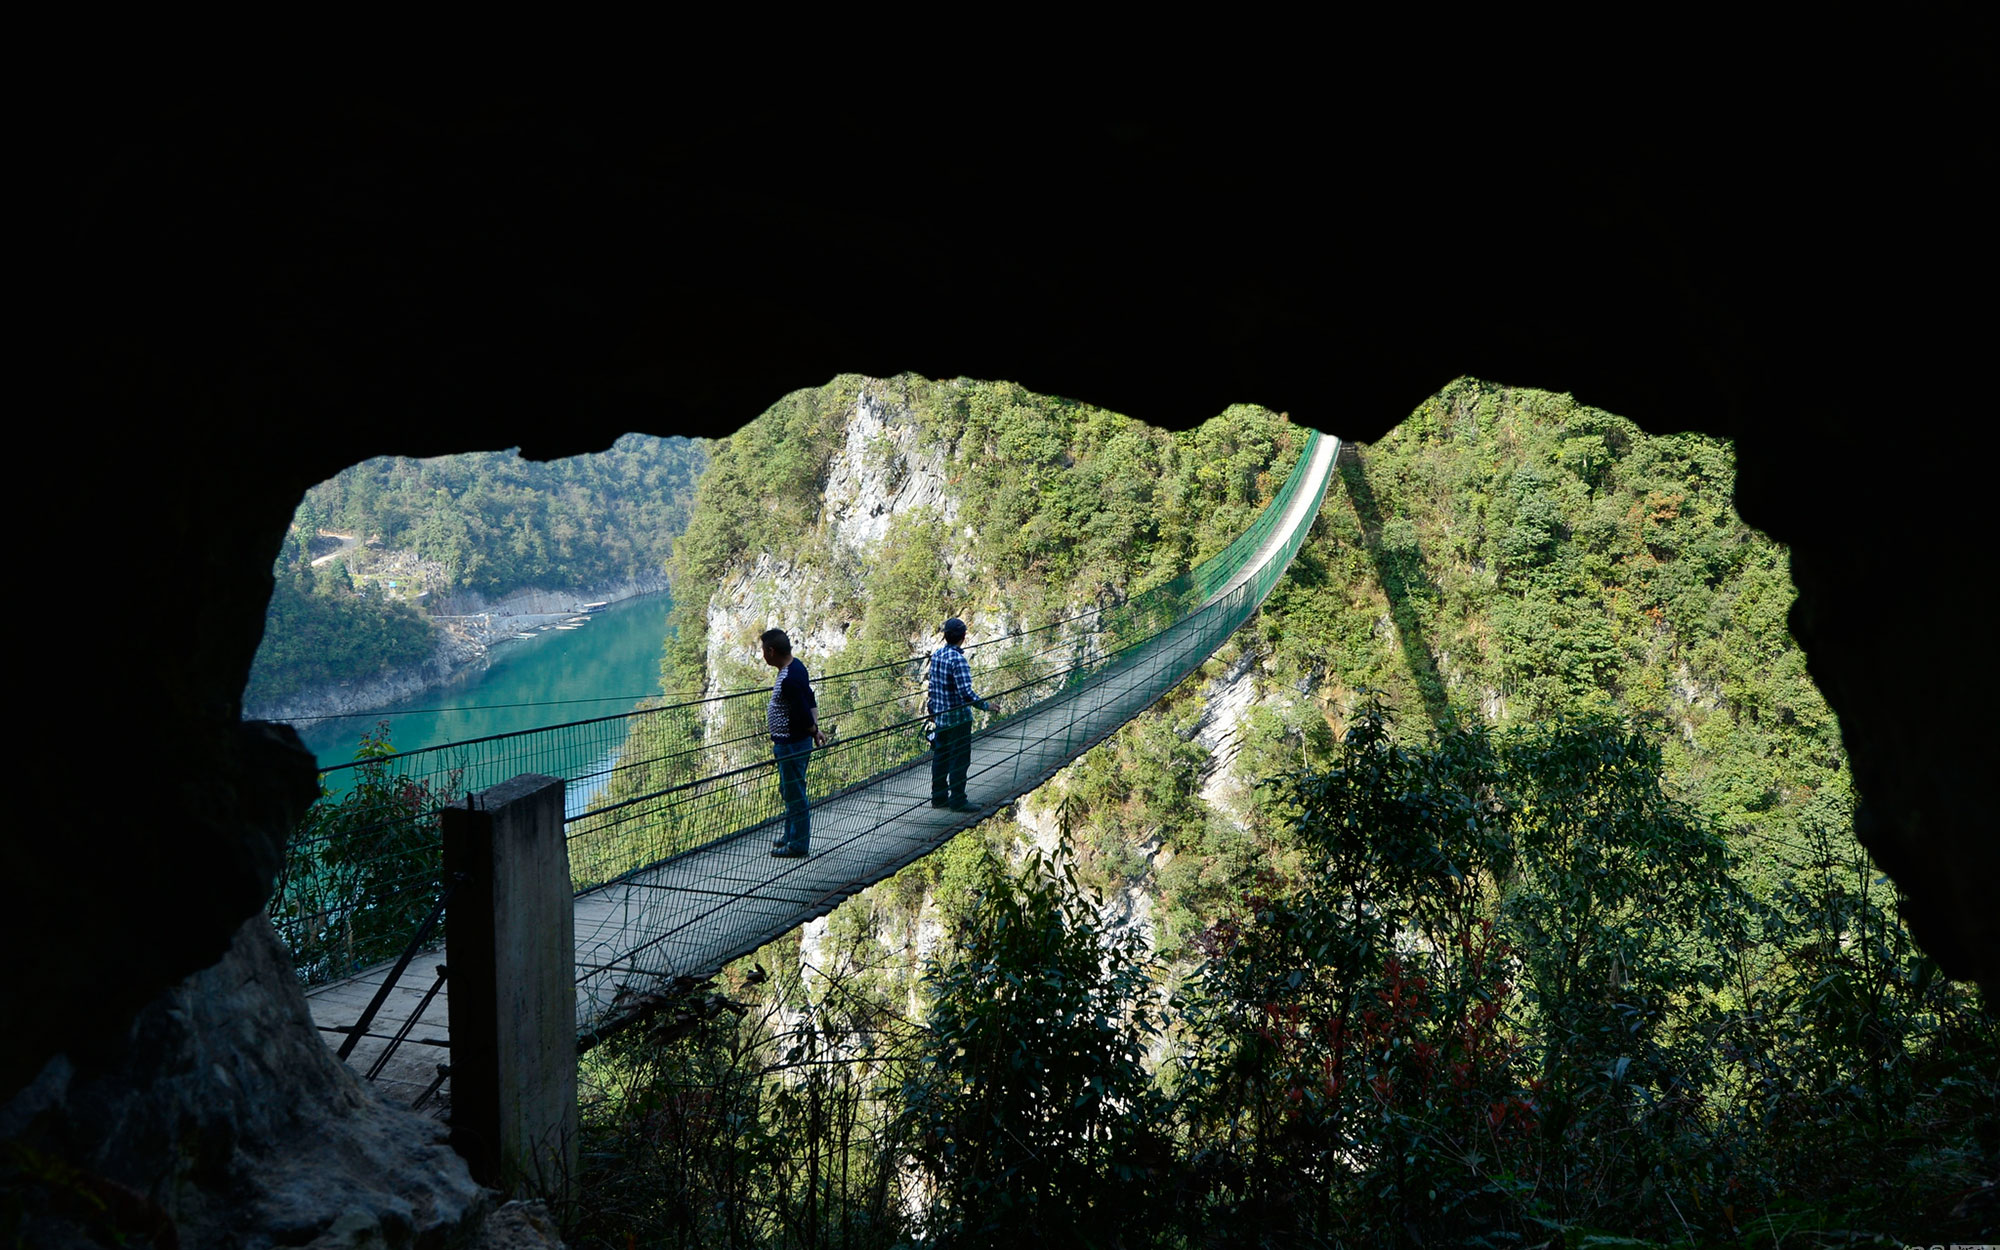 Swinging Bridge in China's Hubei Province